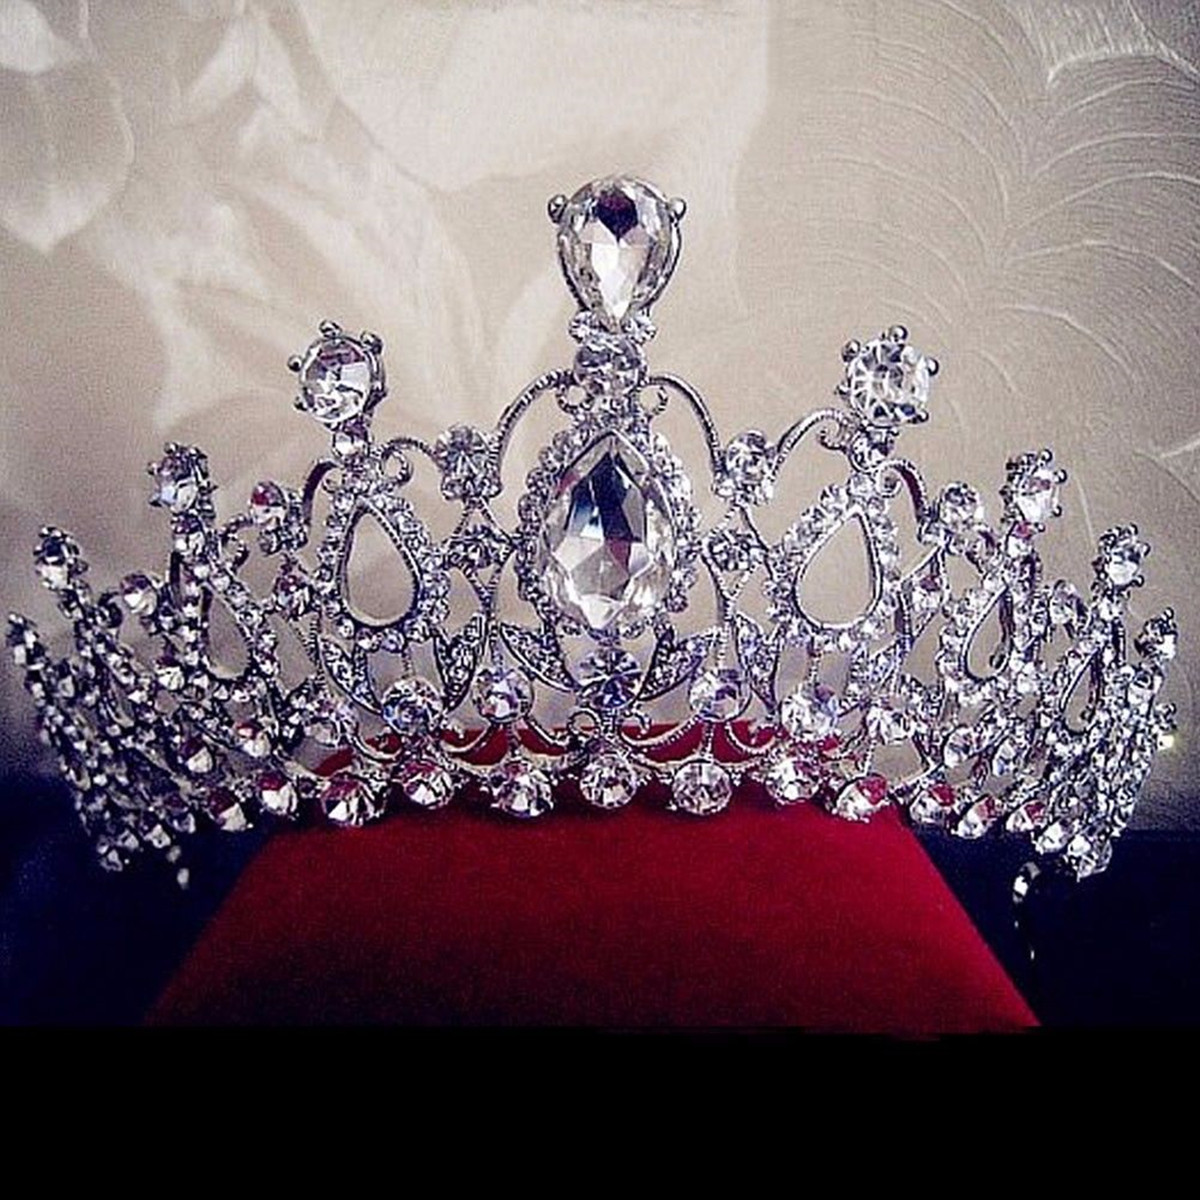 Bride Rhinestone Crystal Tiara Crown Princess Queen Wedding Bridal Party Prom Headpiece